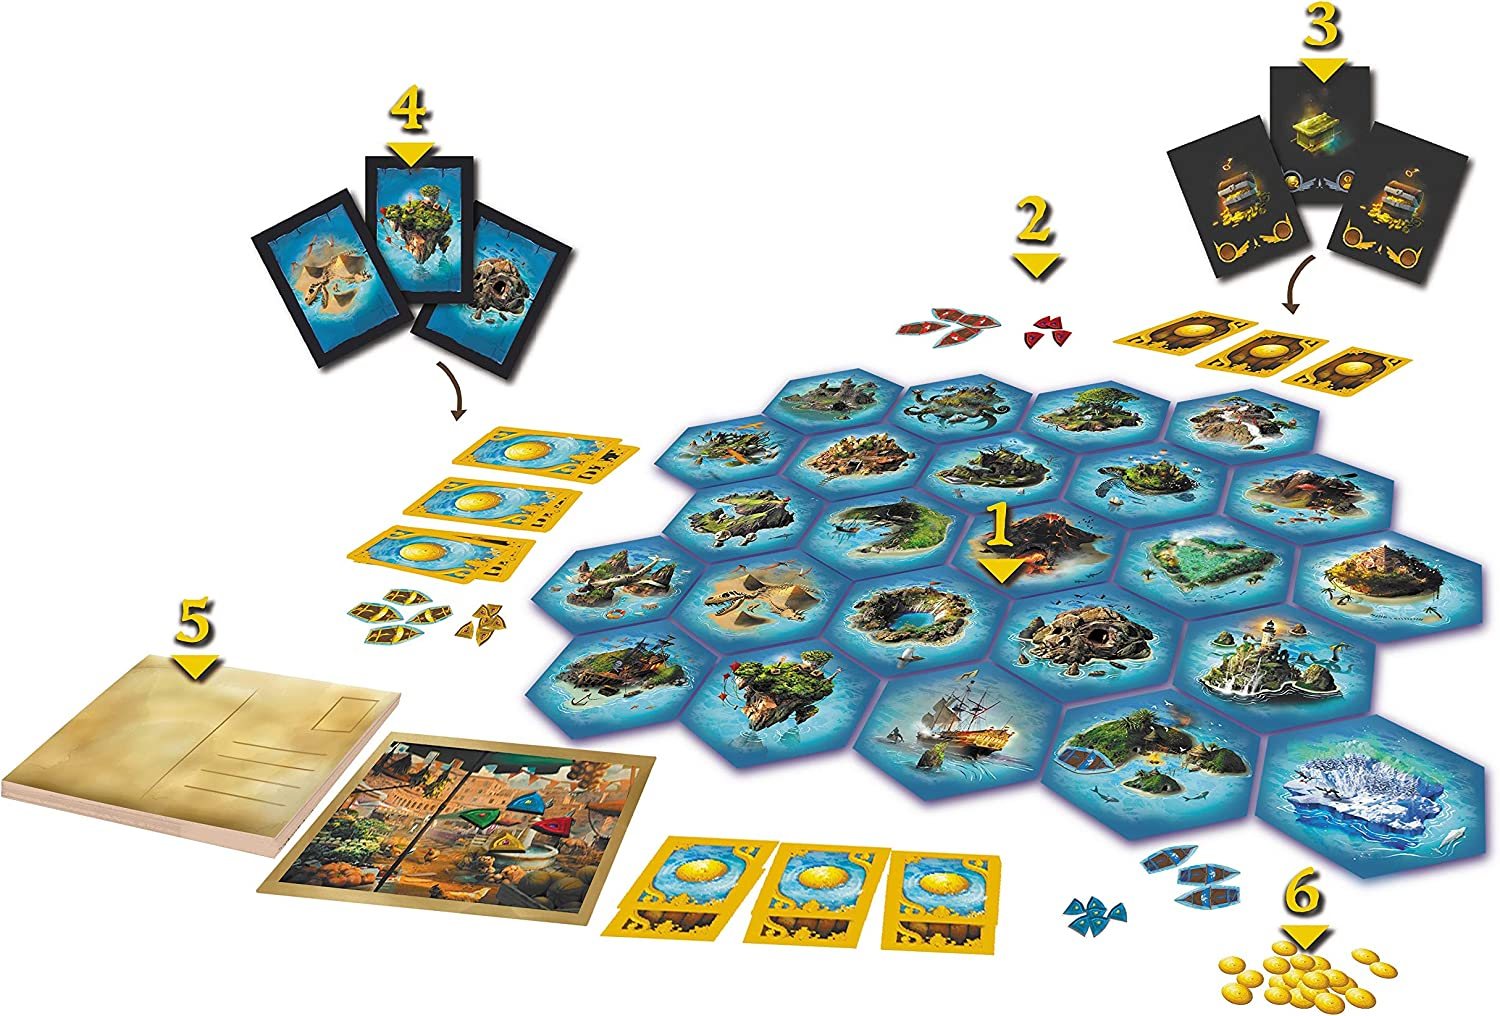 Lubee- Guardians of Legends LUB001GU, Multicolor: Amazon.es: Juguetes y juegos